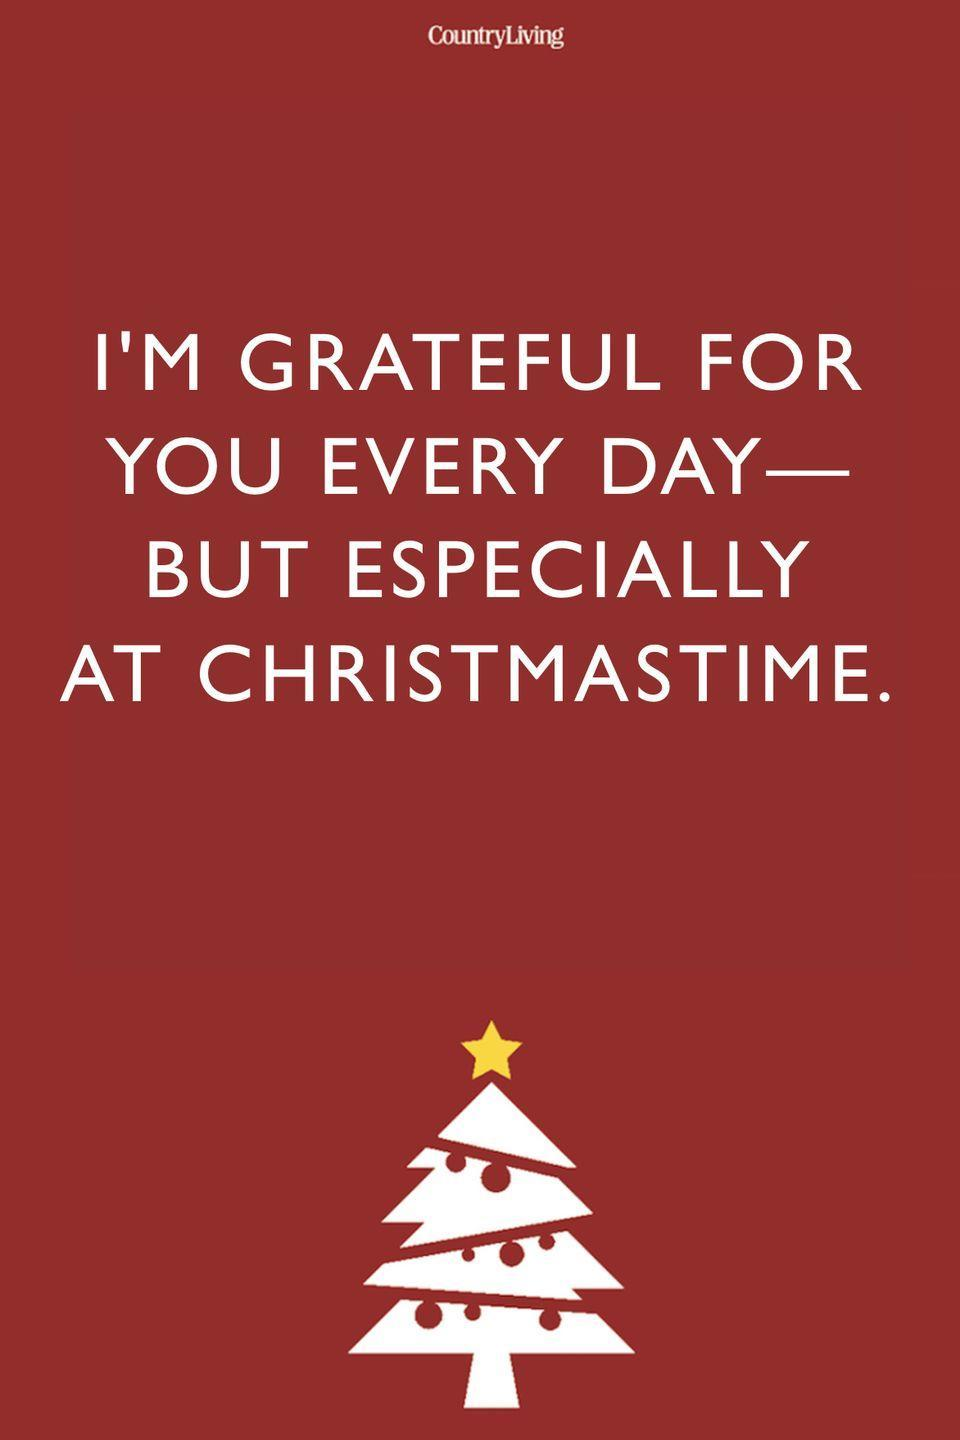 <p>I'm grateful for you every day—but especially at Christmastime.</p>